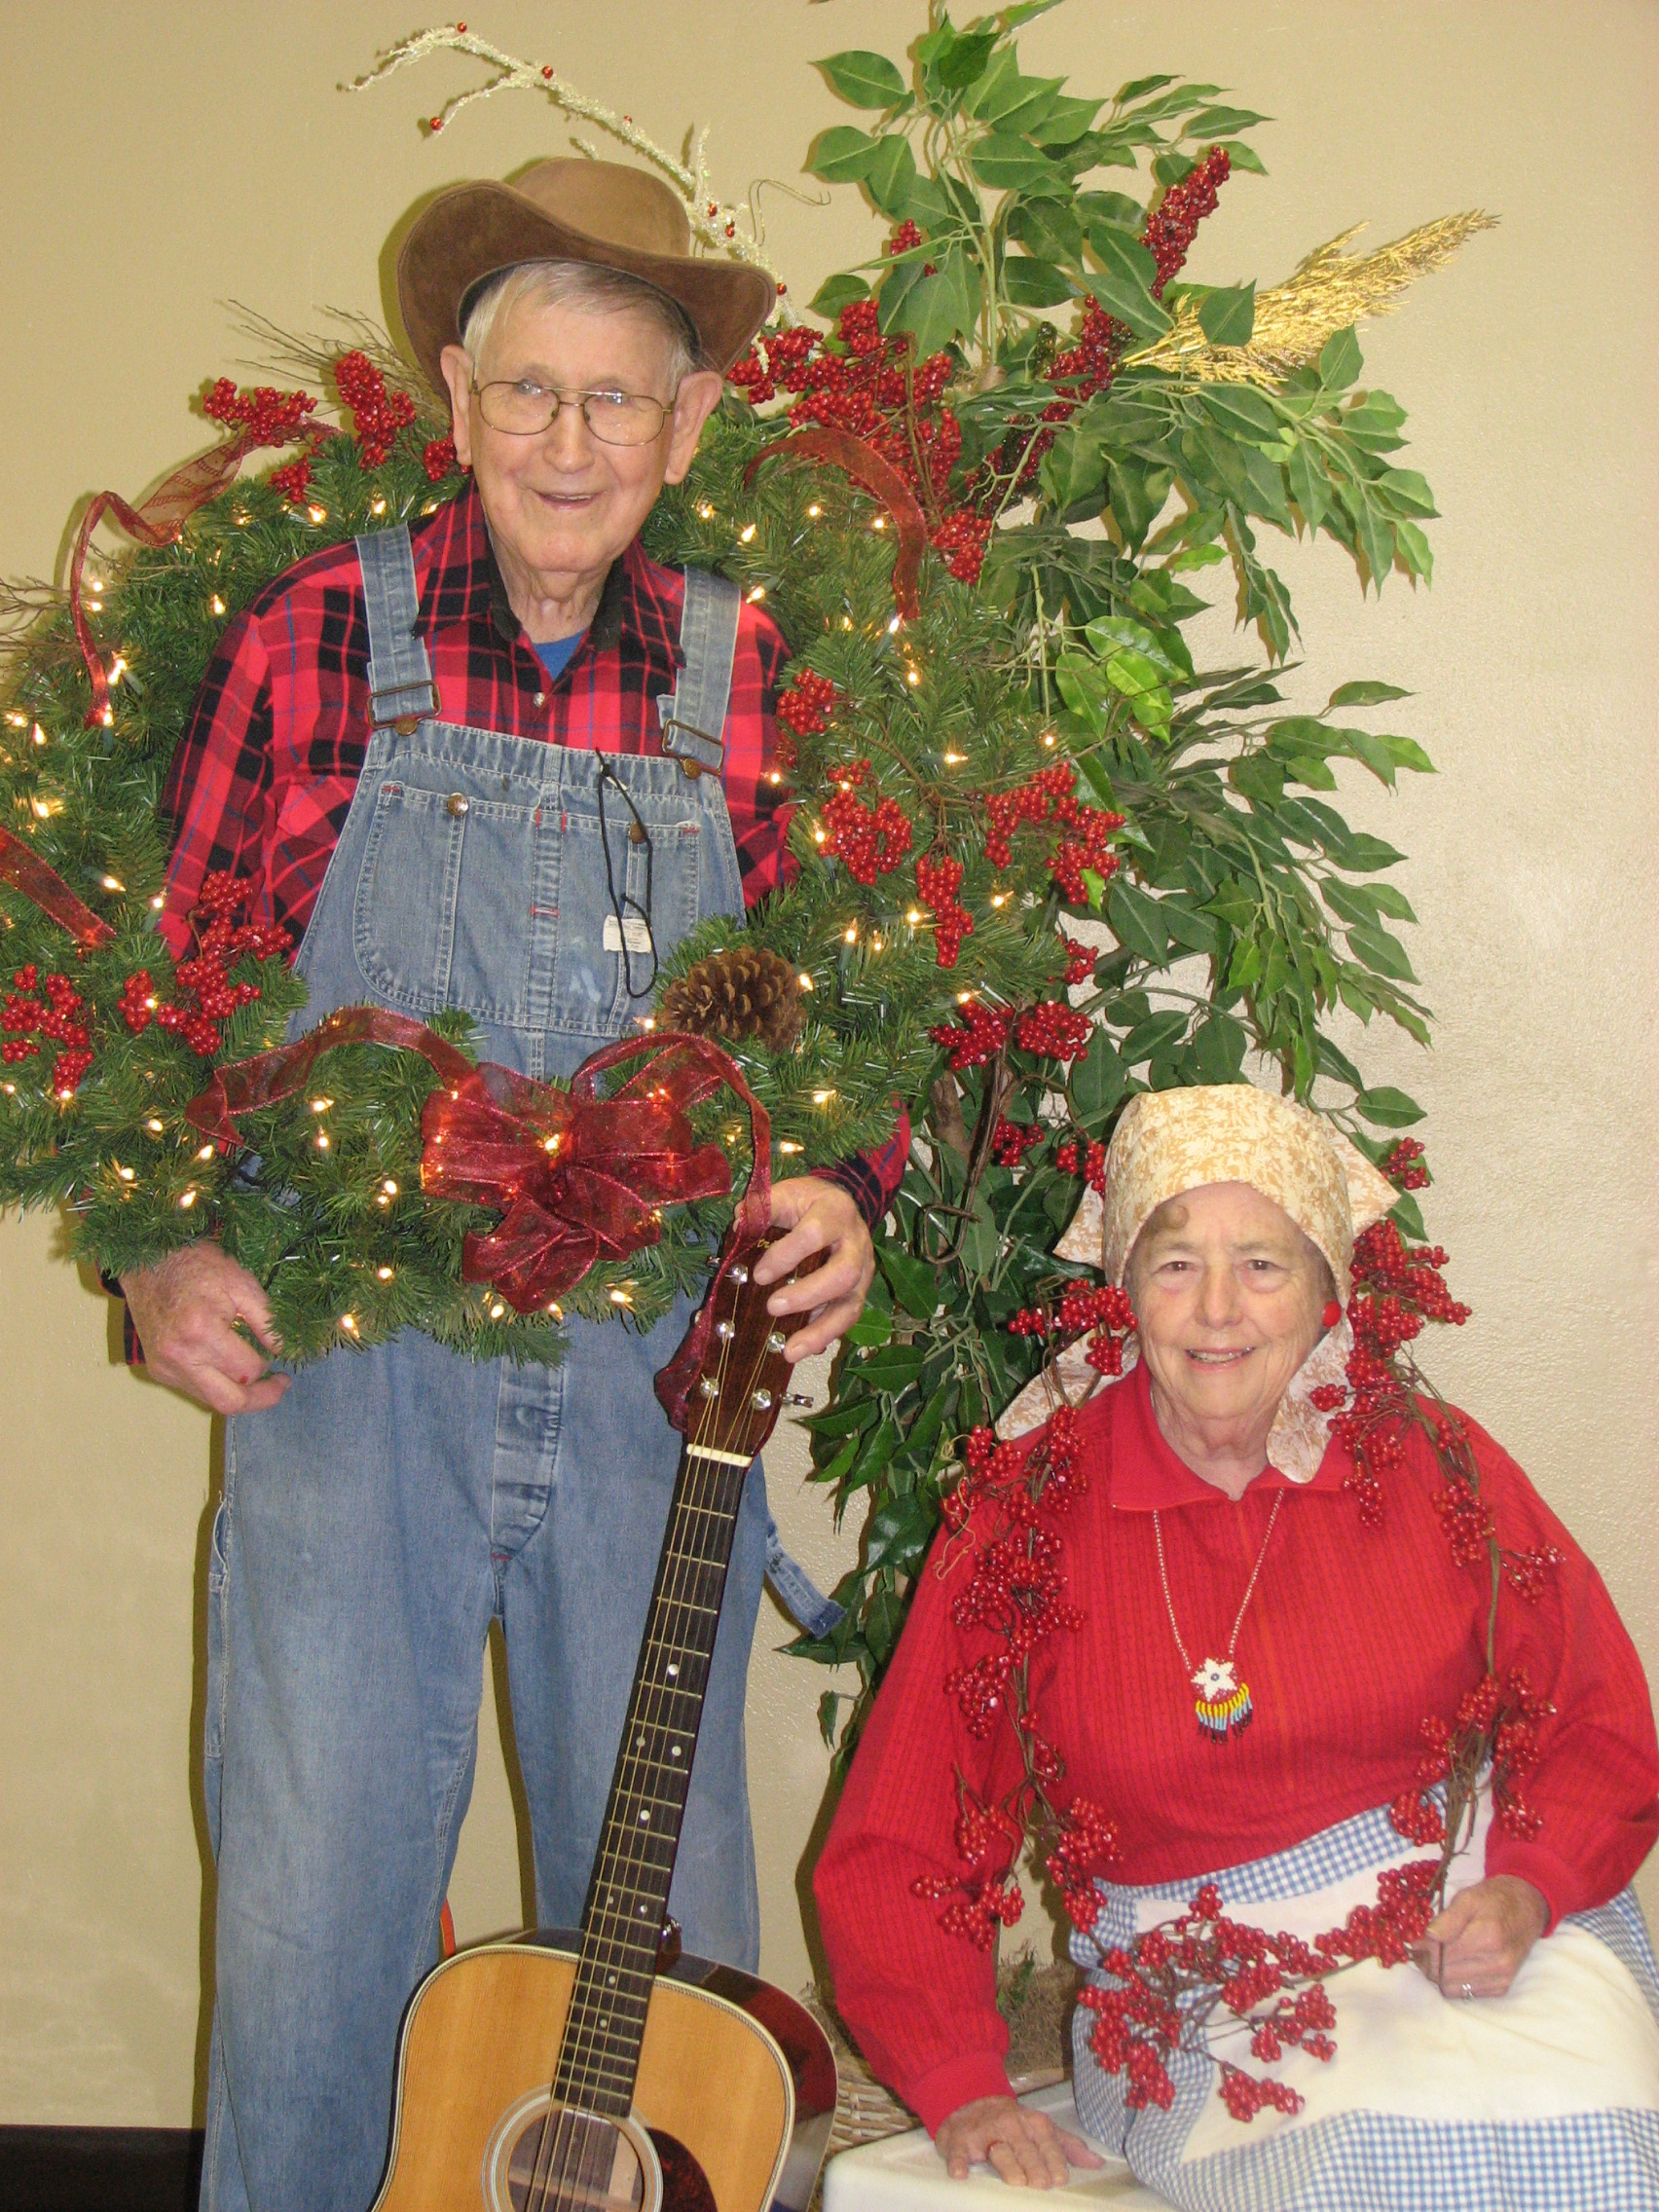 Hillbilly Christmas Photo.Not Your Traditional Christmas Gallery Ebaum S World